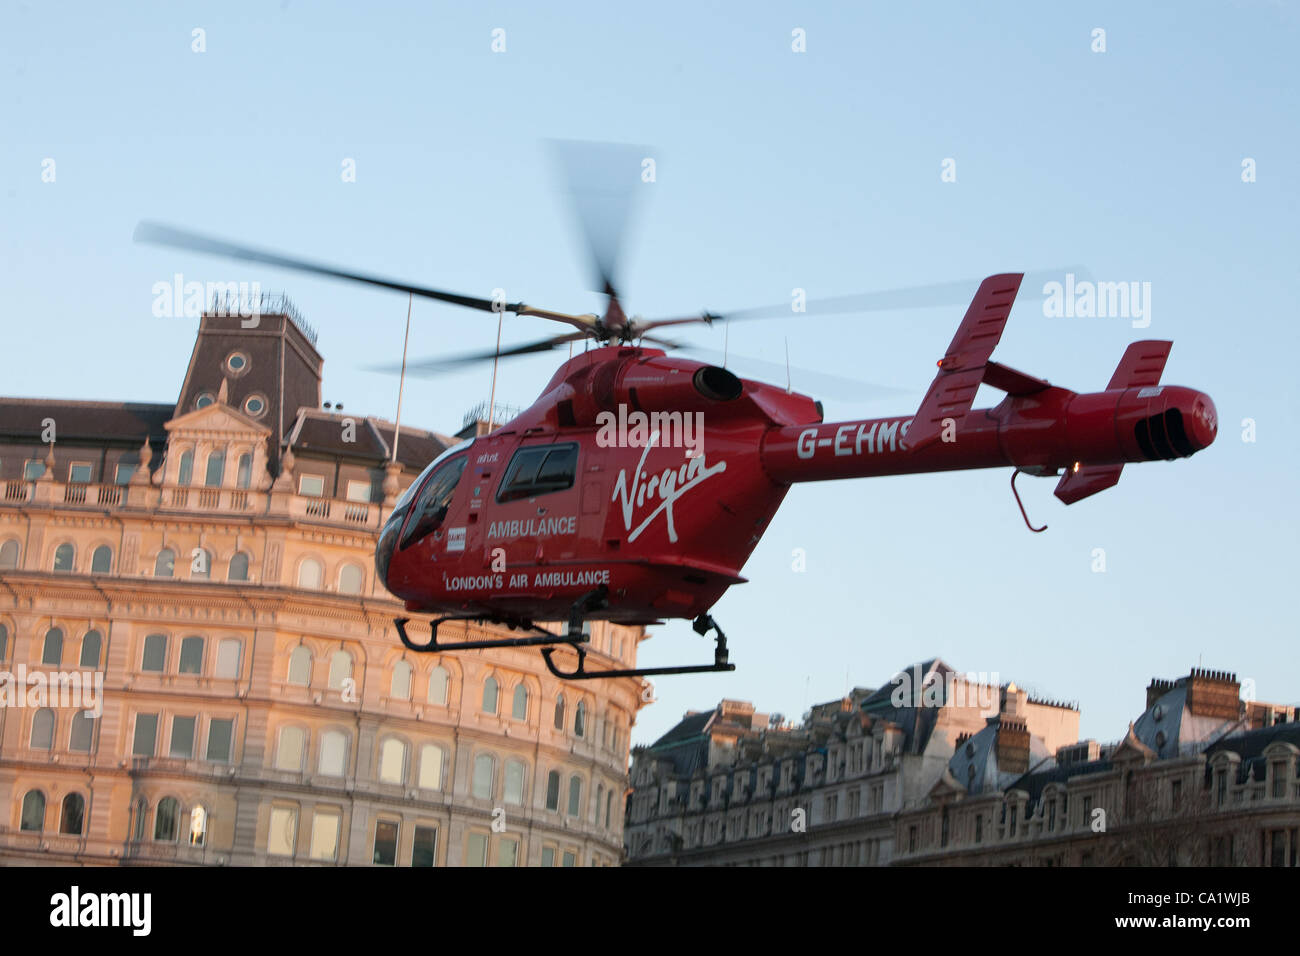 London, UK, 21/03/2012, Air ambulance landed in Trafalgar Square in rush hour, reportedly to help with a casualty - Stock Image